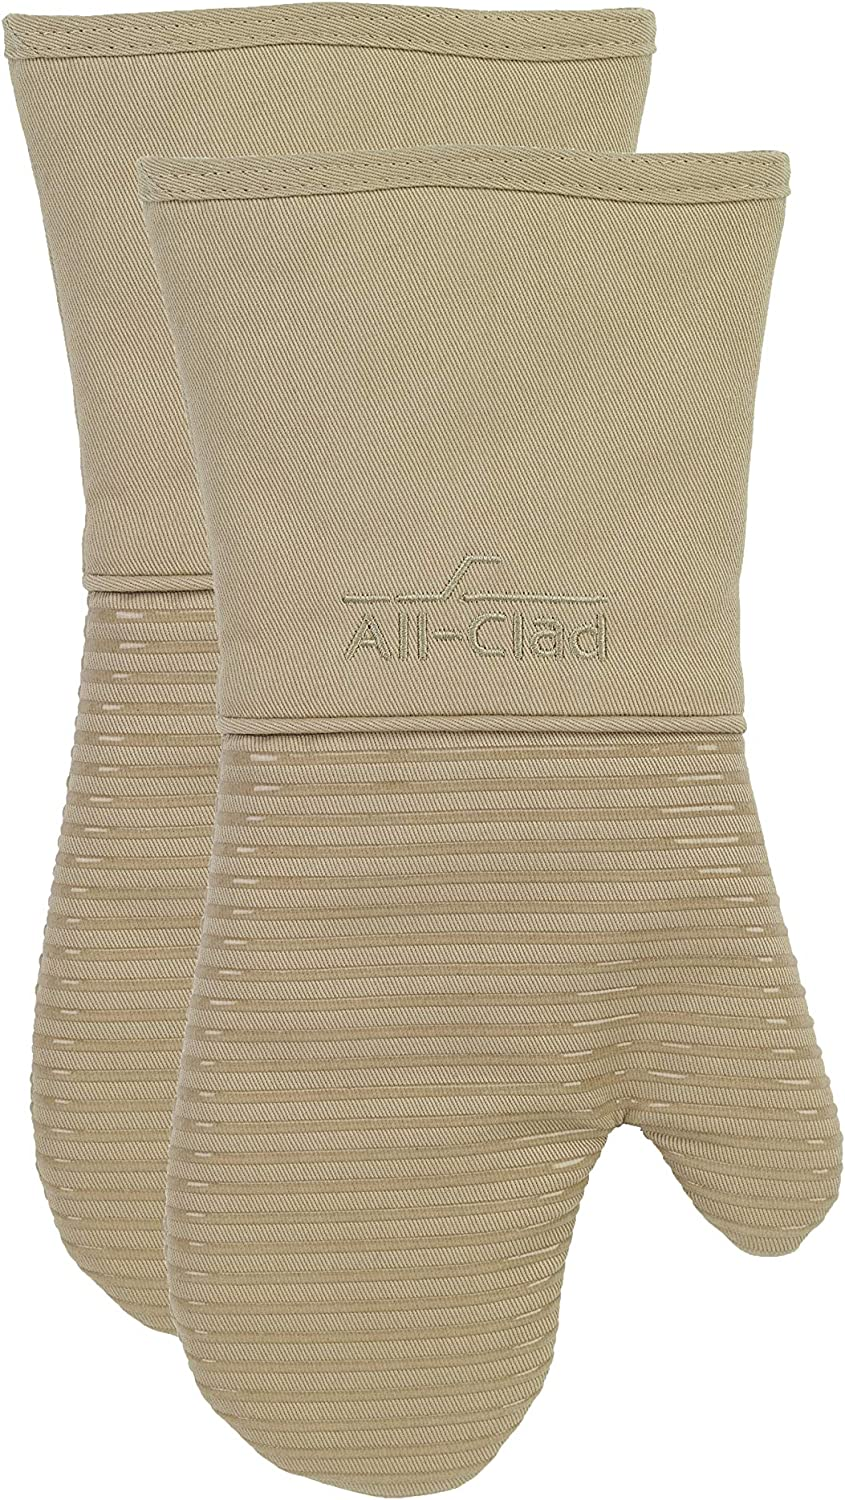 All-Clad Textiles Oven Mitt, 2 Pack, Cappuccino, 2 Count